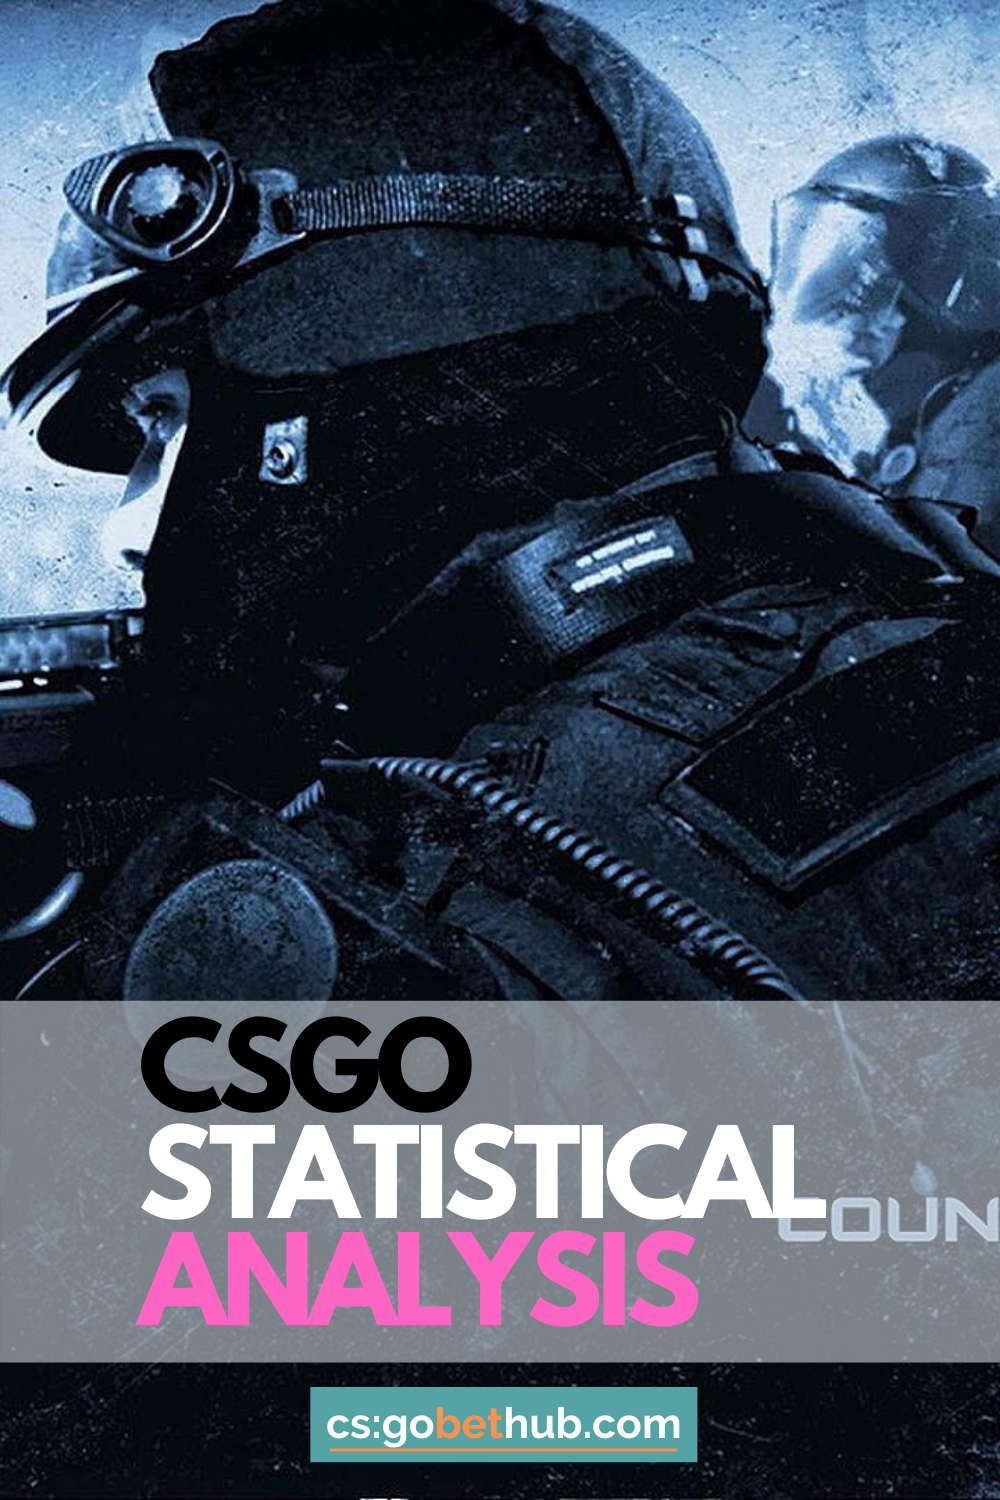 csgo betting in a nutshell book